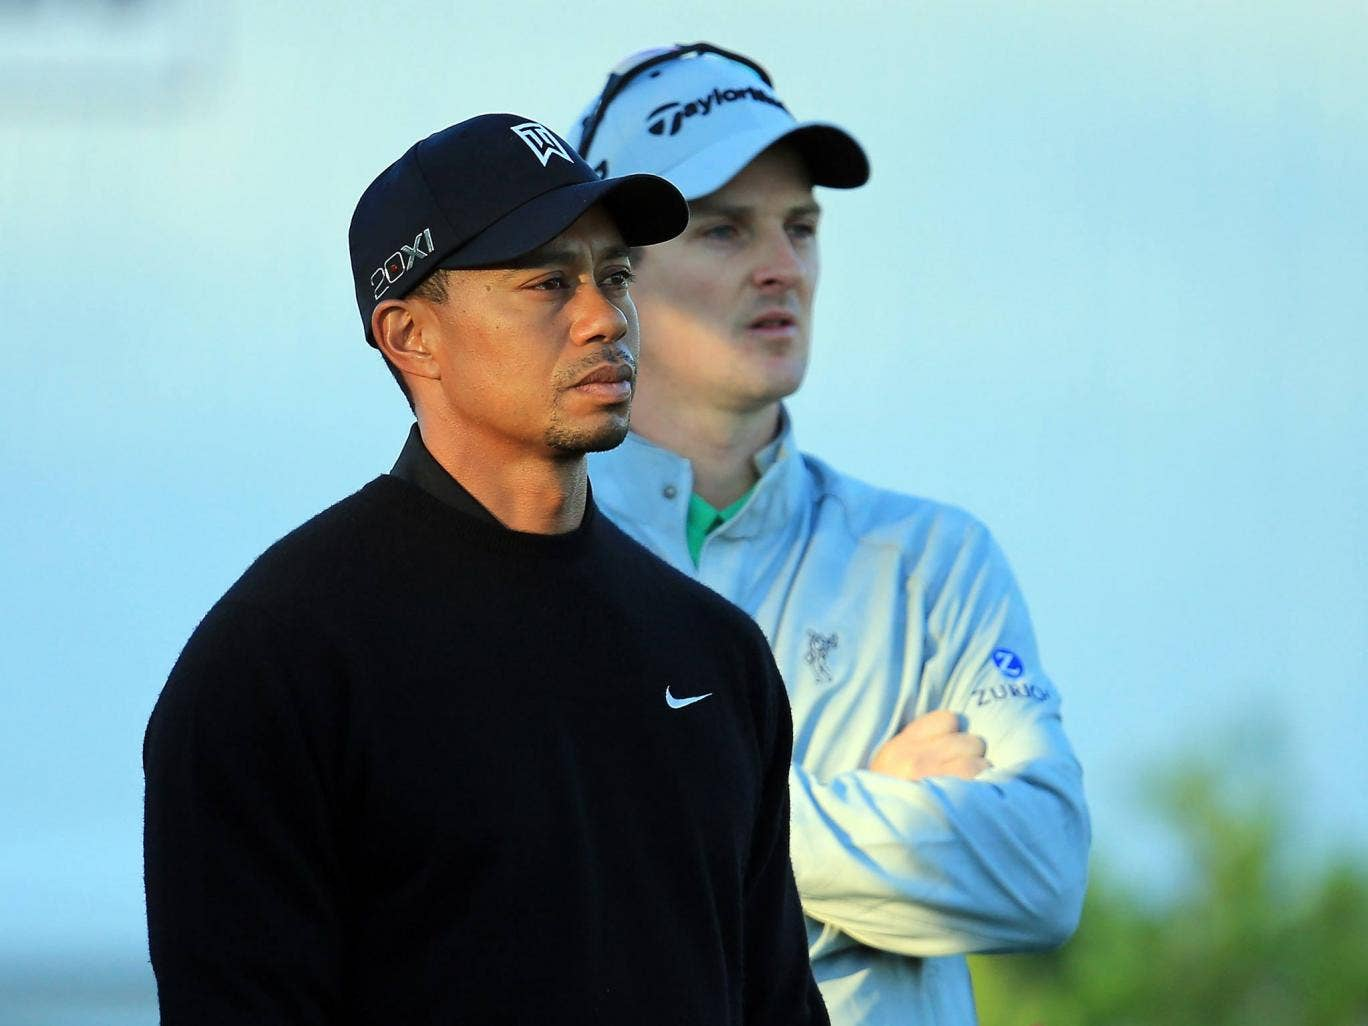 Tiger Woods alongside Justin Rose at Bay Hill